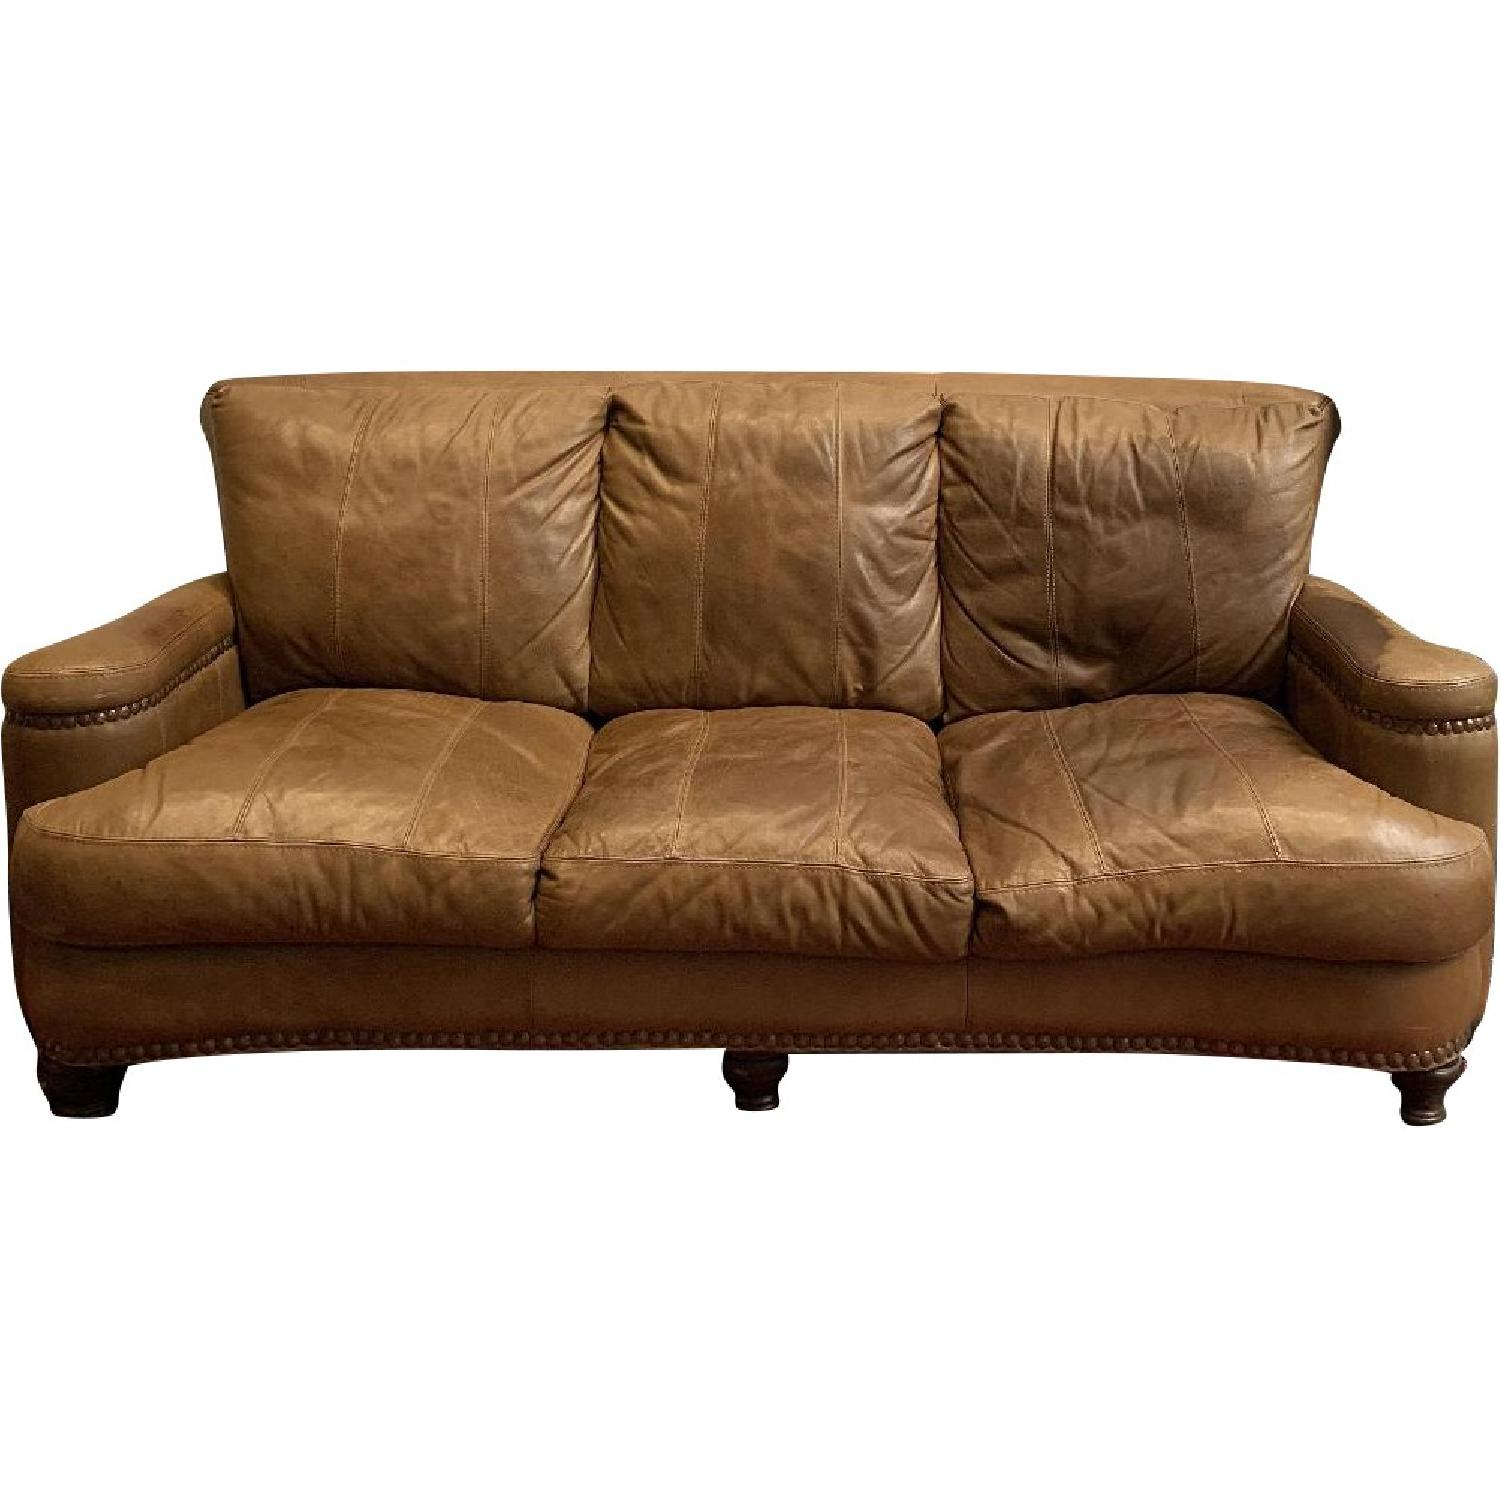 Tan Italian Leather Sofa